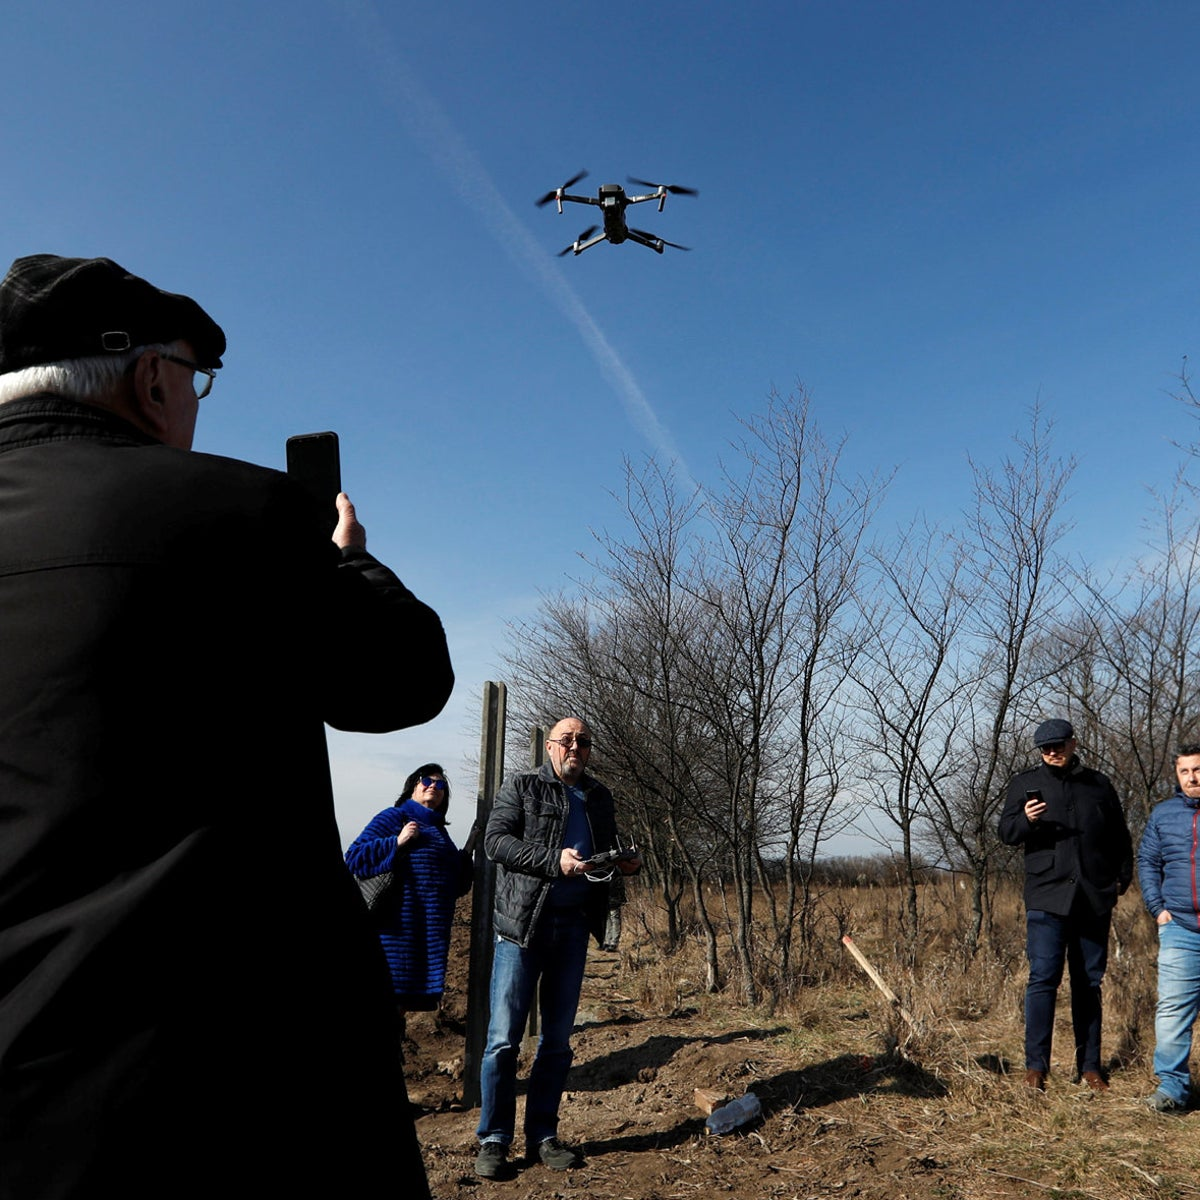 A drone take off over a jewish cemetery near the village of Reca, Slovakia, Feb. 26, 2019.